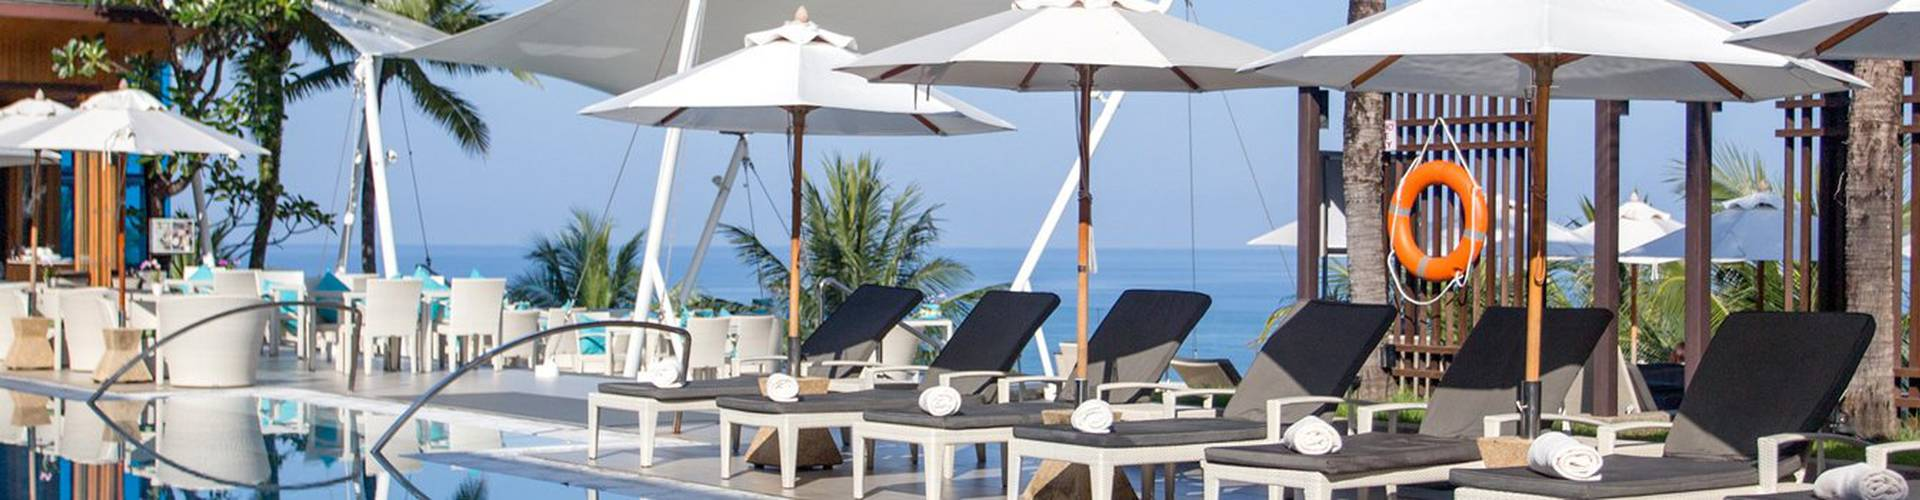 Cape Sienna Phuket Gourmet Hotel & Villas - Phuket - Privacy policy